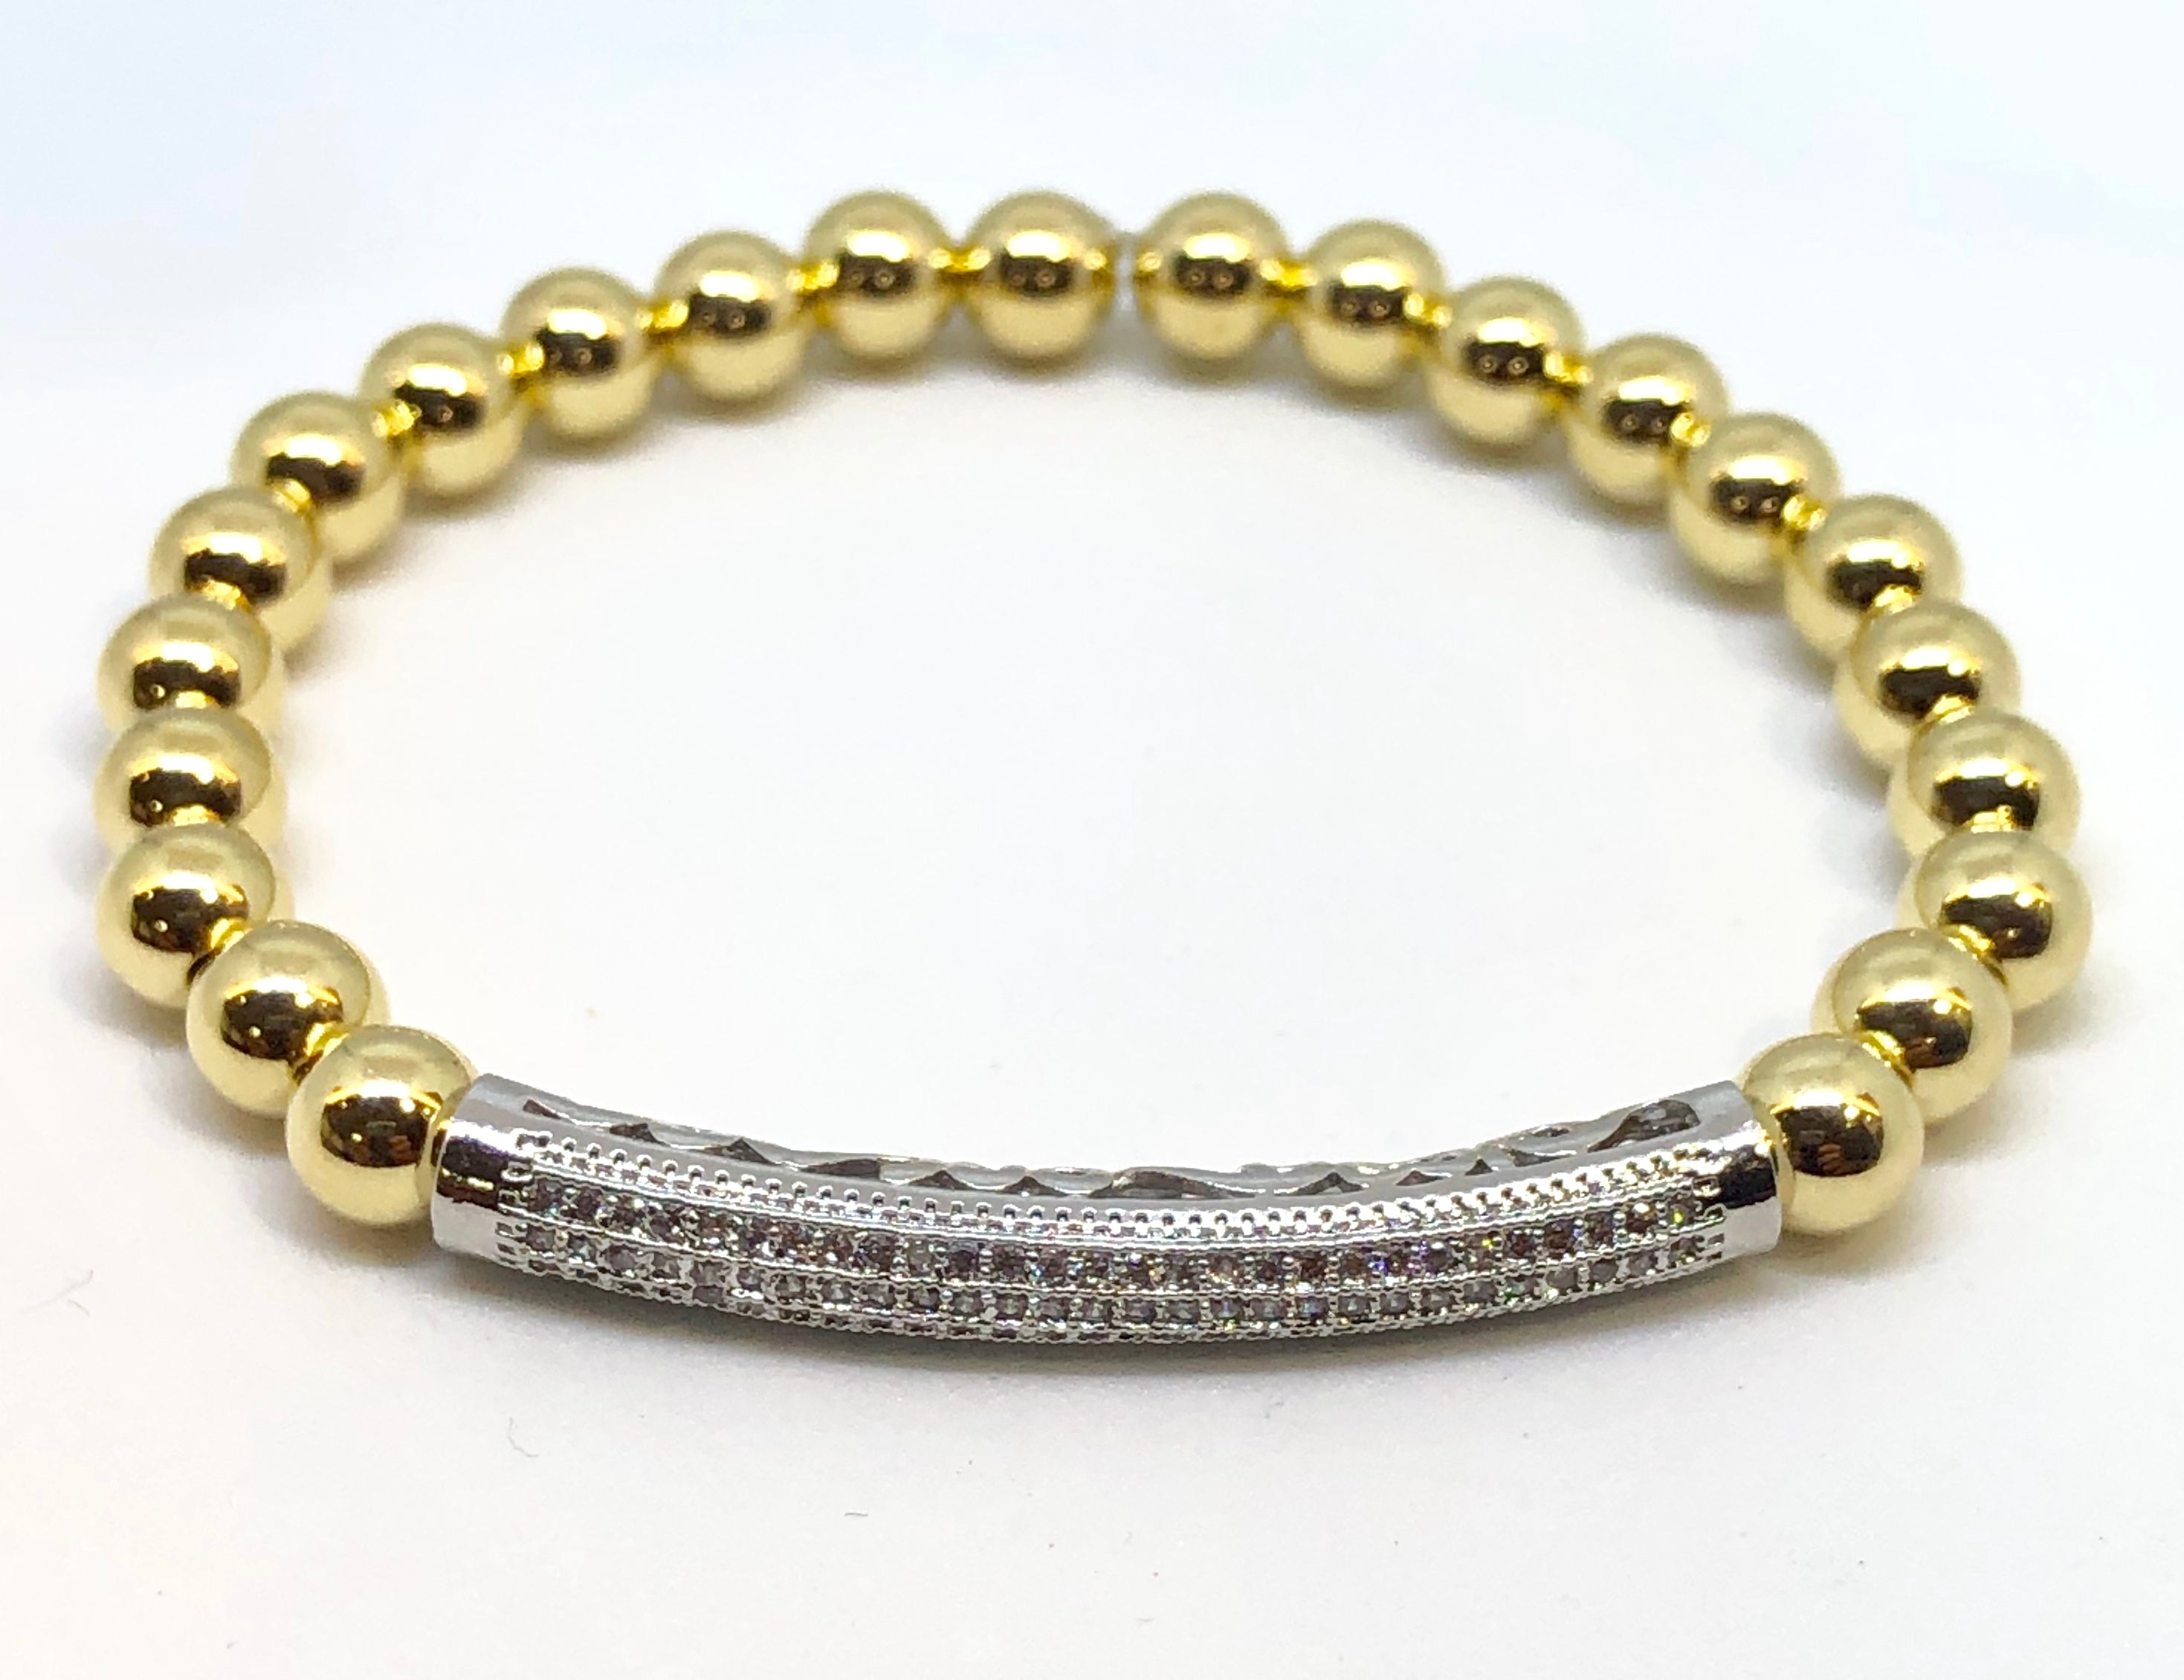 6mm 14kt Gold Filled Bead Bracelet with 6mm CZ Jeweled Silver Tube